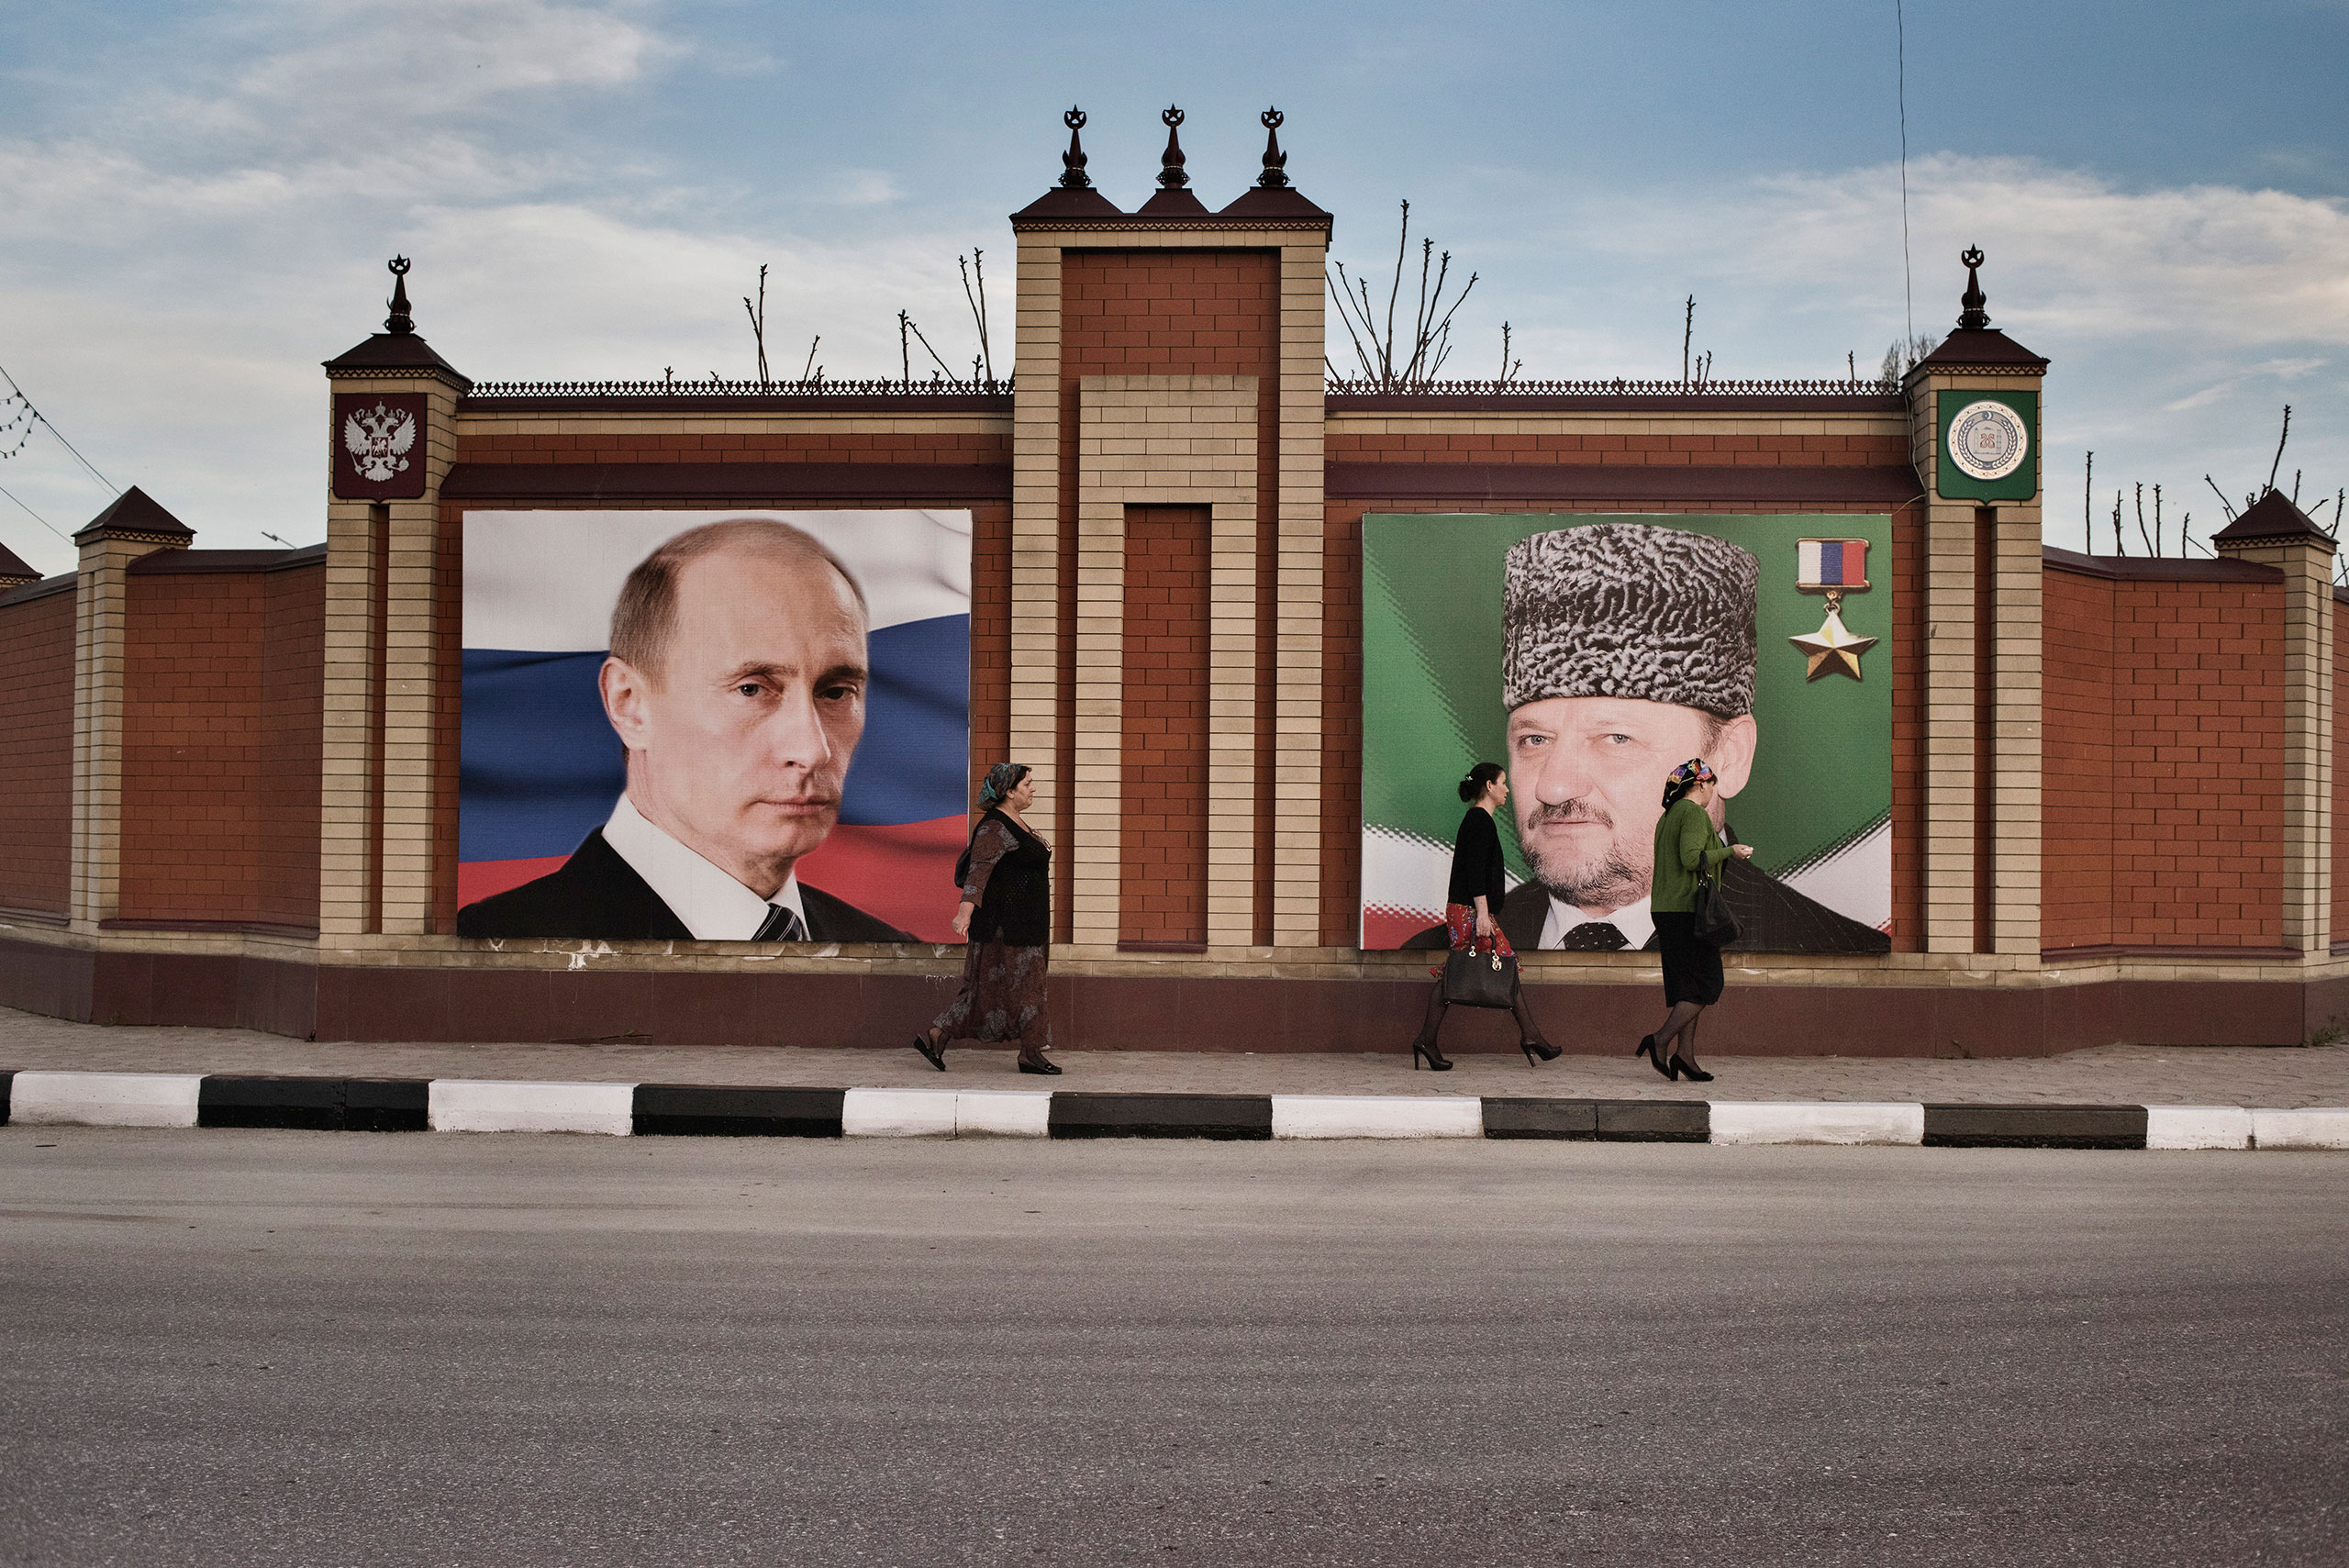 Women walk past a portrait of Russian President Vladimir Putin and the late President of Chechnya, Akhmad Kadyrov, the father of Chechnya's current leader, Ramzan Kadyrov, Throughout the region, portraits of Putin and the Kadyrovs are plastered on the facades of buildings and along highways, Grozny, Chechnya, April 2015.From  Yuri Kozyrev: Photographing 15 Years of Chechnya's Troubled History